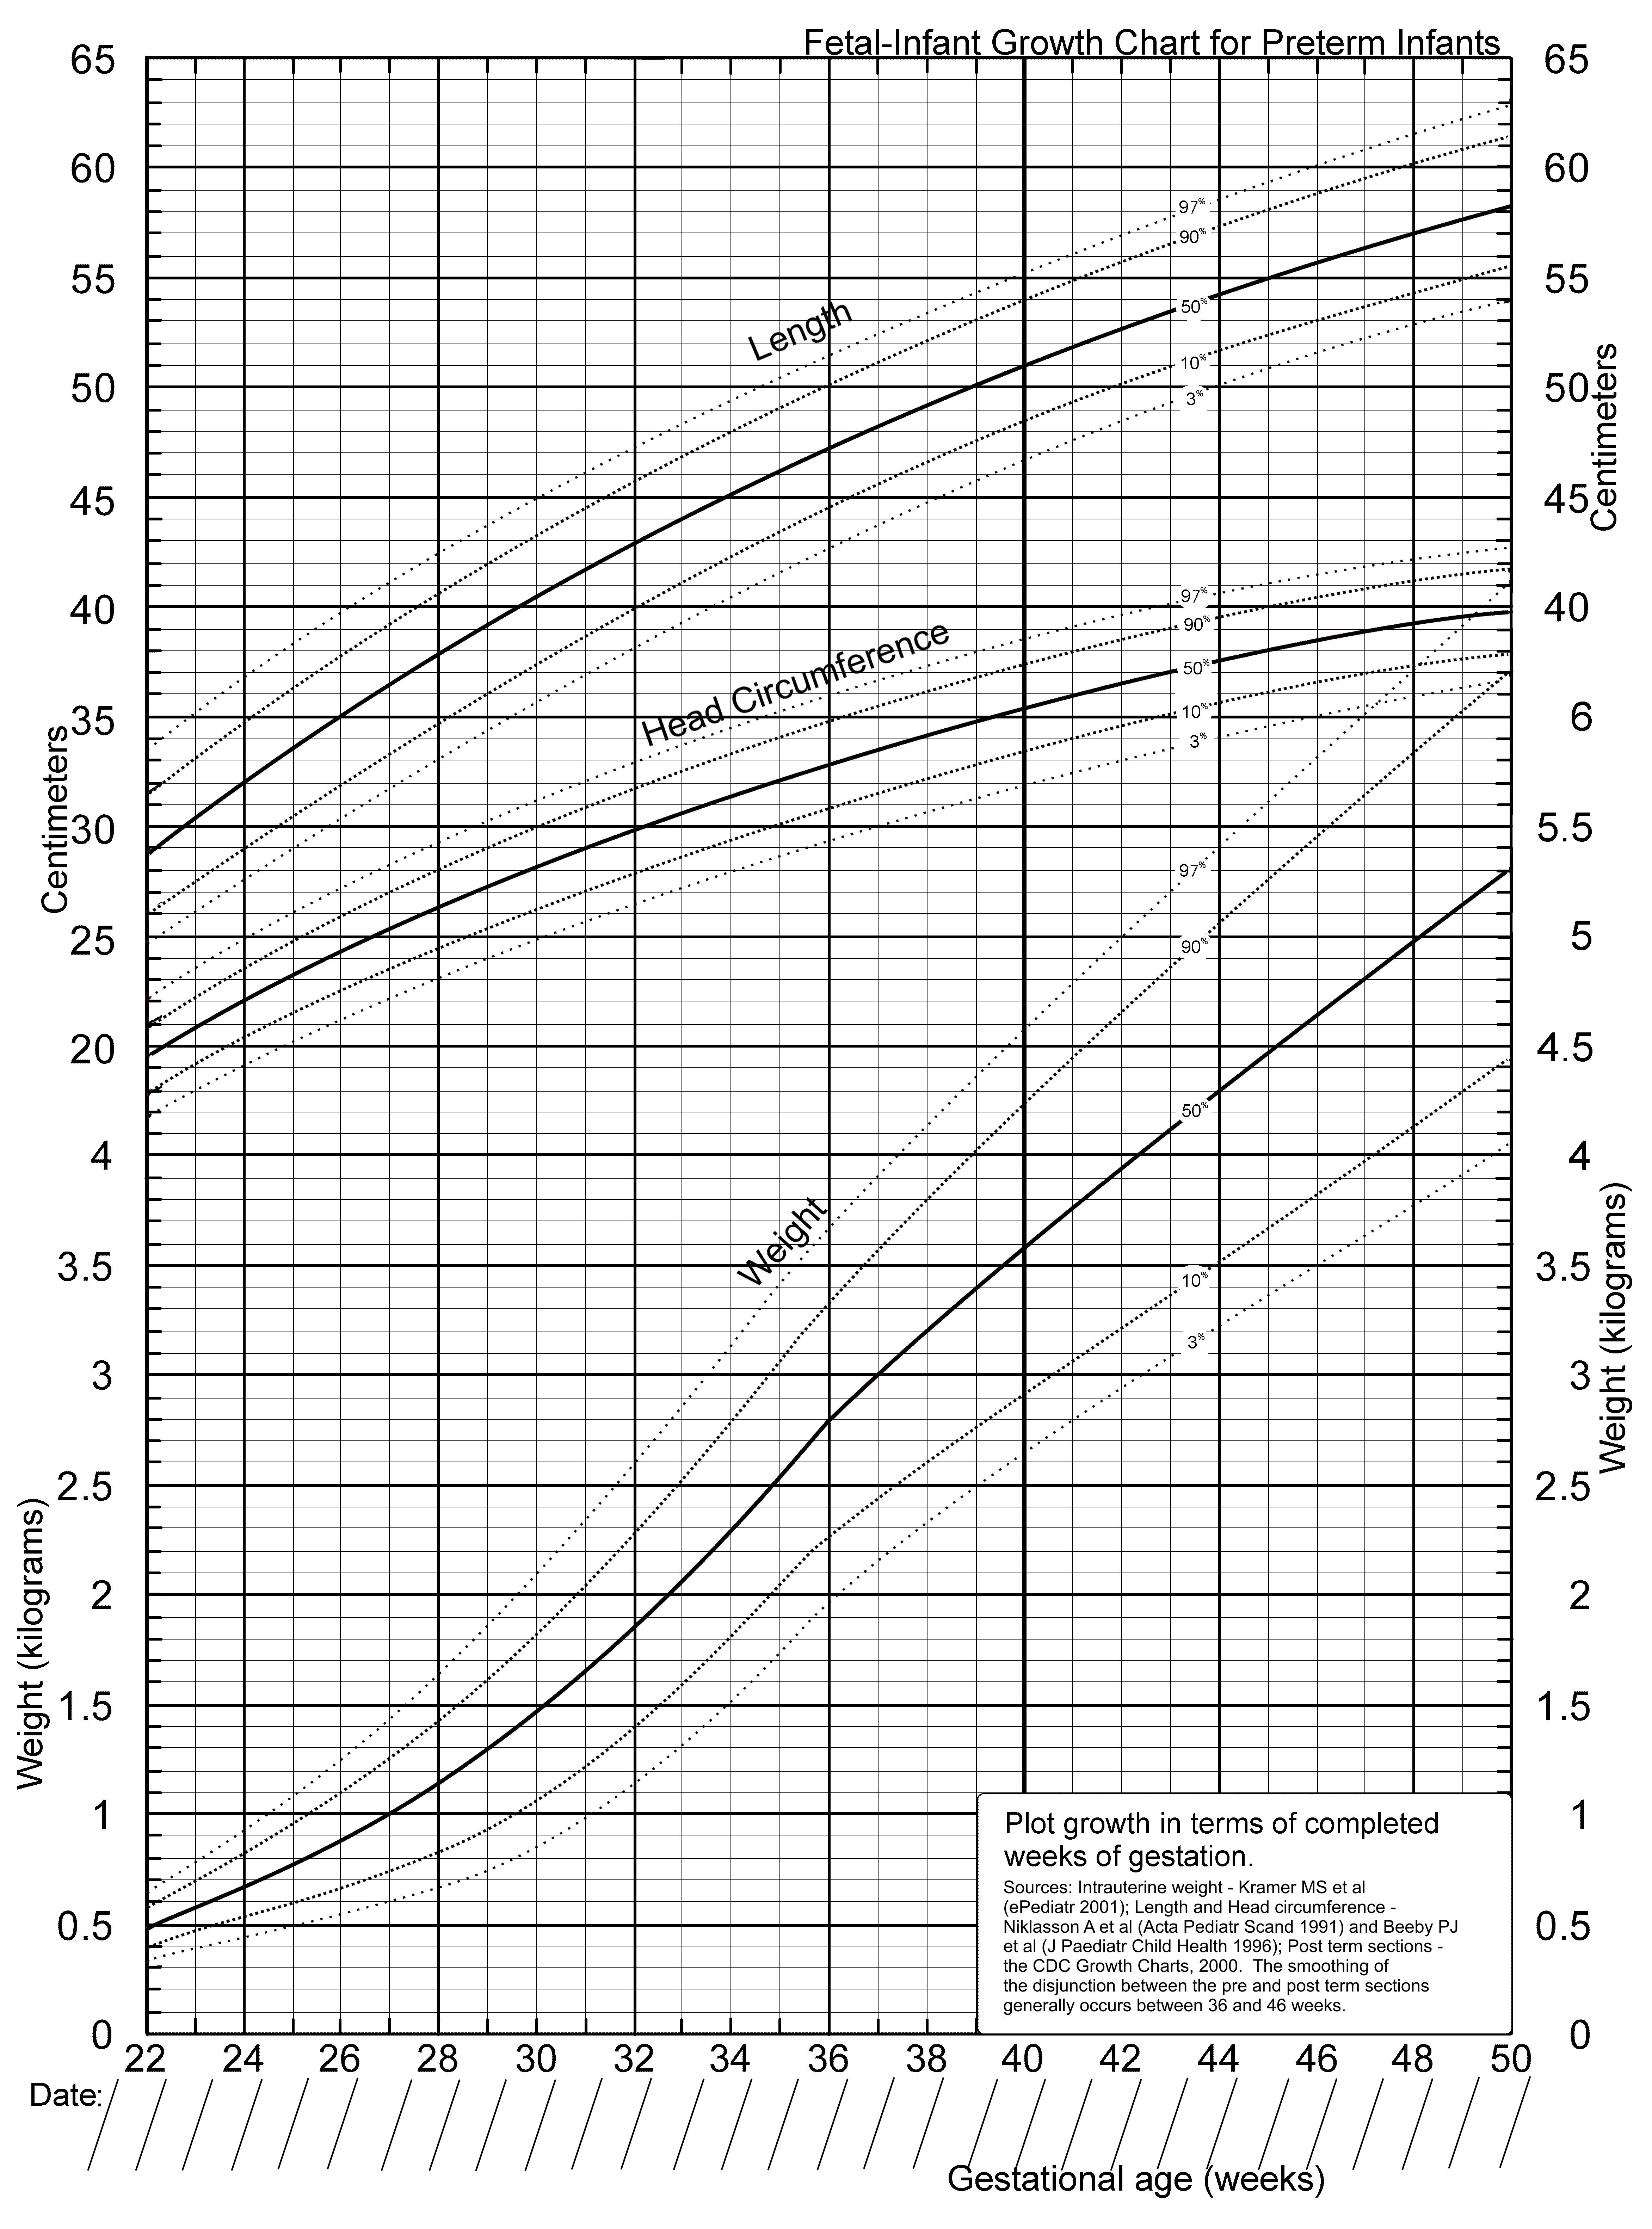 A new growth chart for preterm babies babson and bendas chart 12887200327moesm2esmg nvjuhfo Gallery